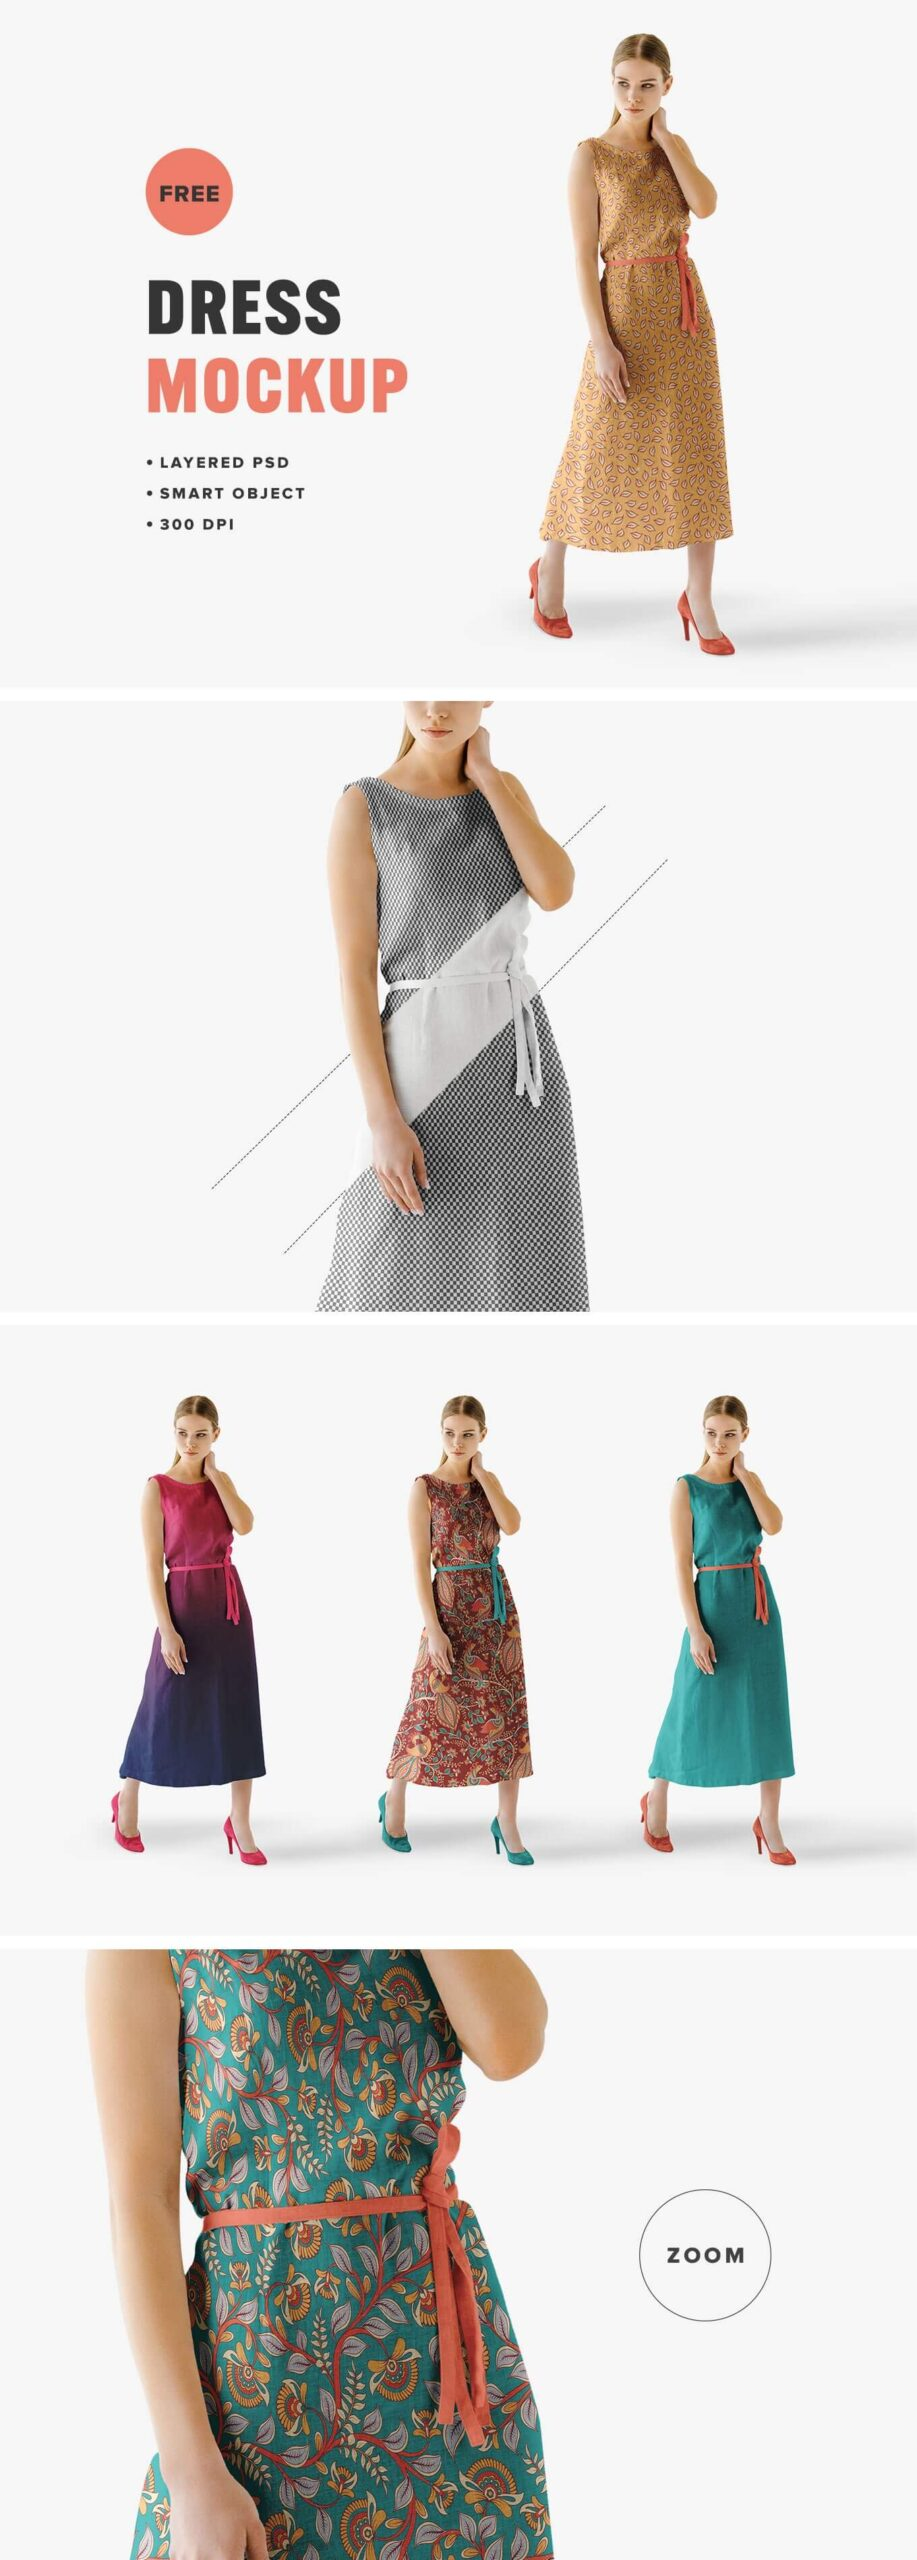 Free Fashionable Summer Dress Mockup PSD Template